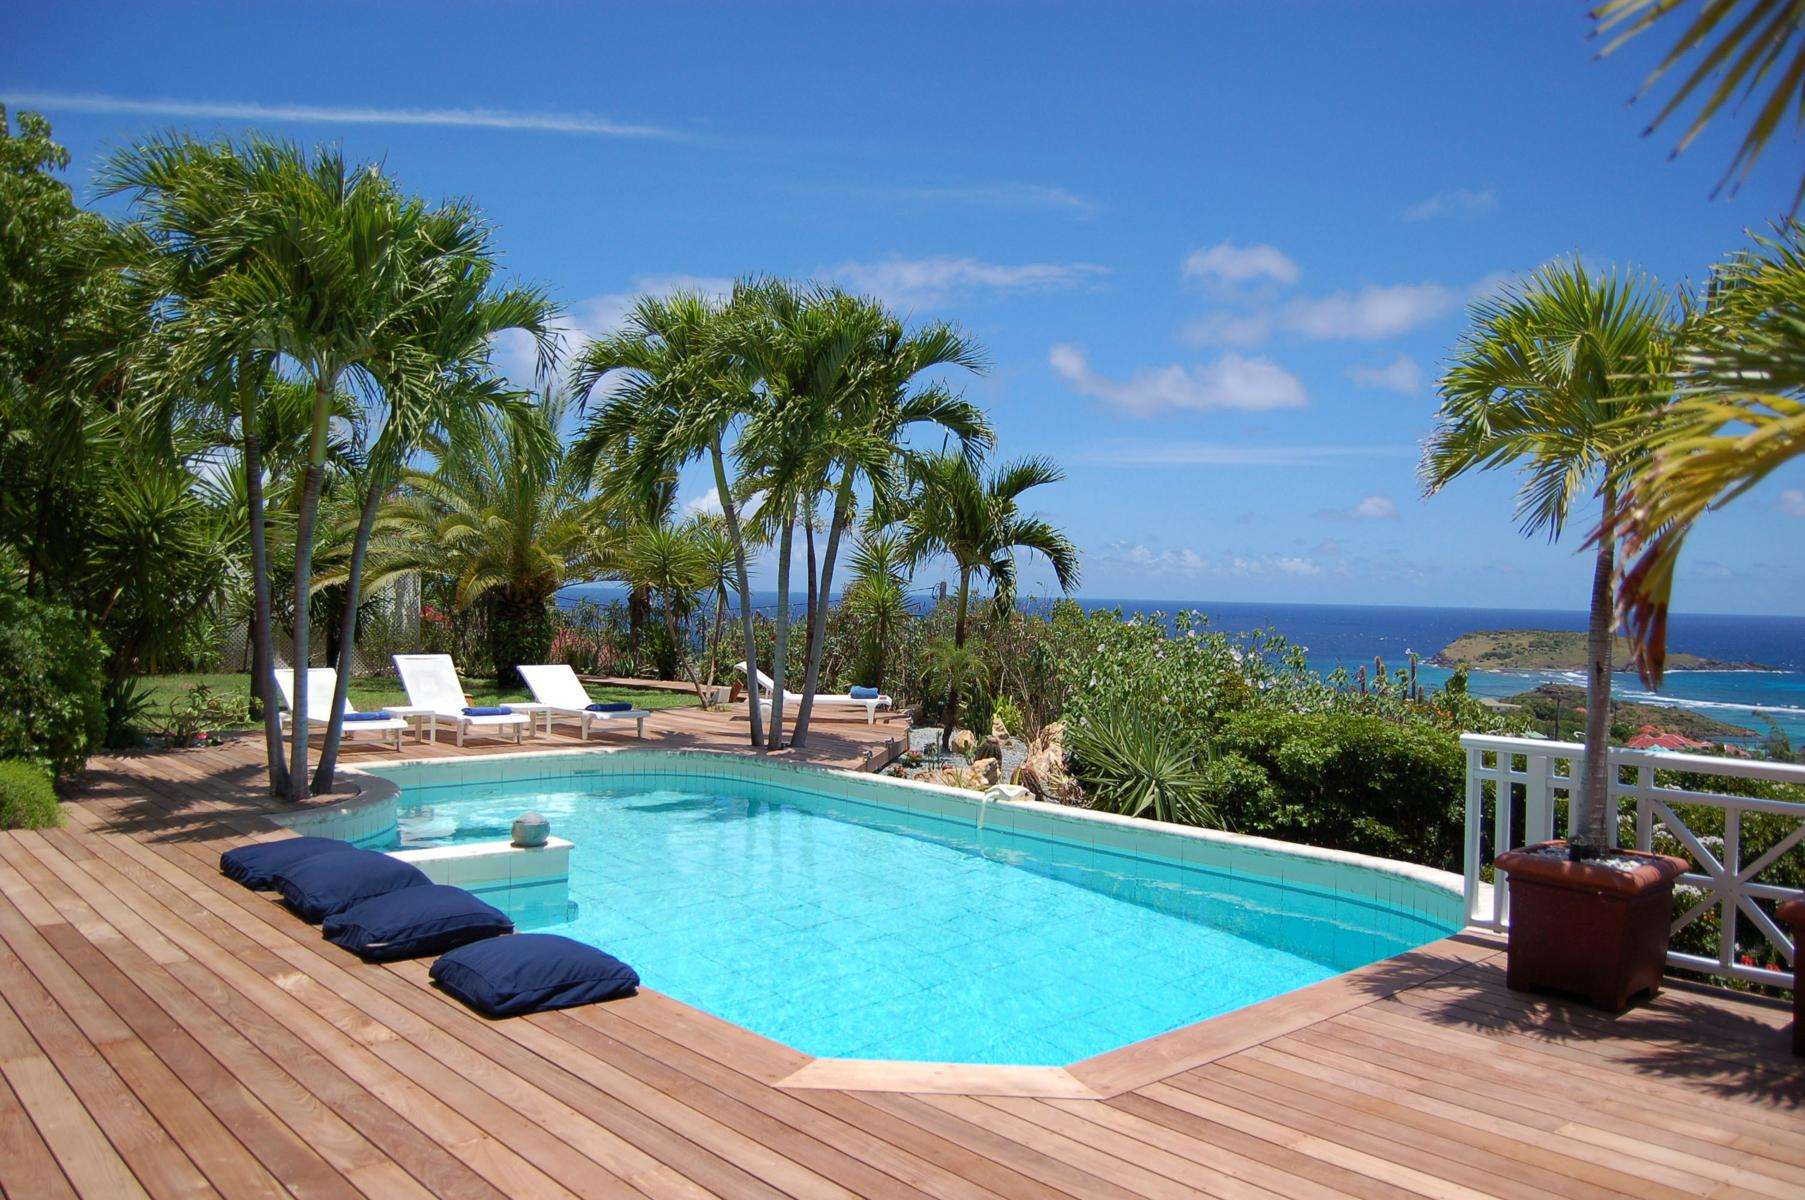 Luxury villa rentals caribbean - St barthelemy - Marigot - No location 4 - Green Cay - Image 1/19